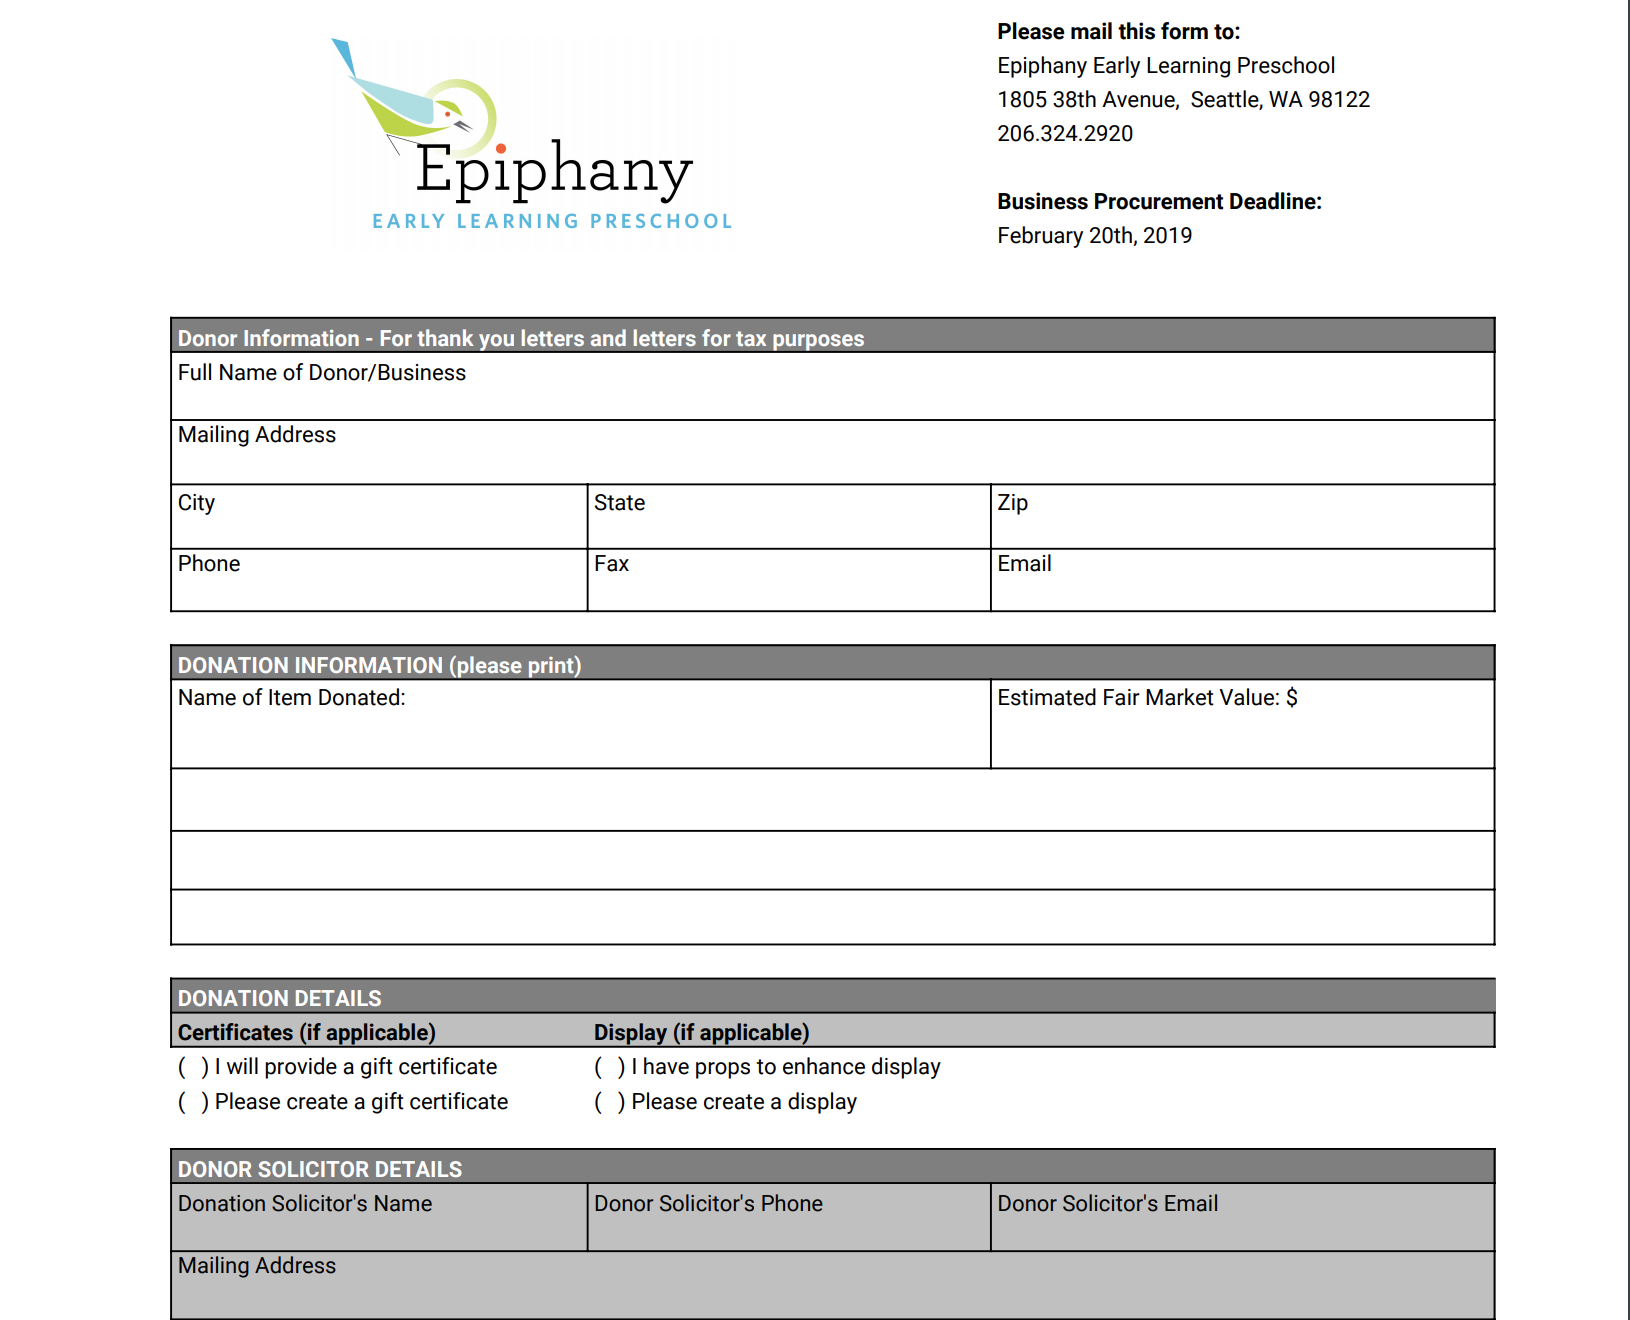 EELP Auction Business Procurement Form